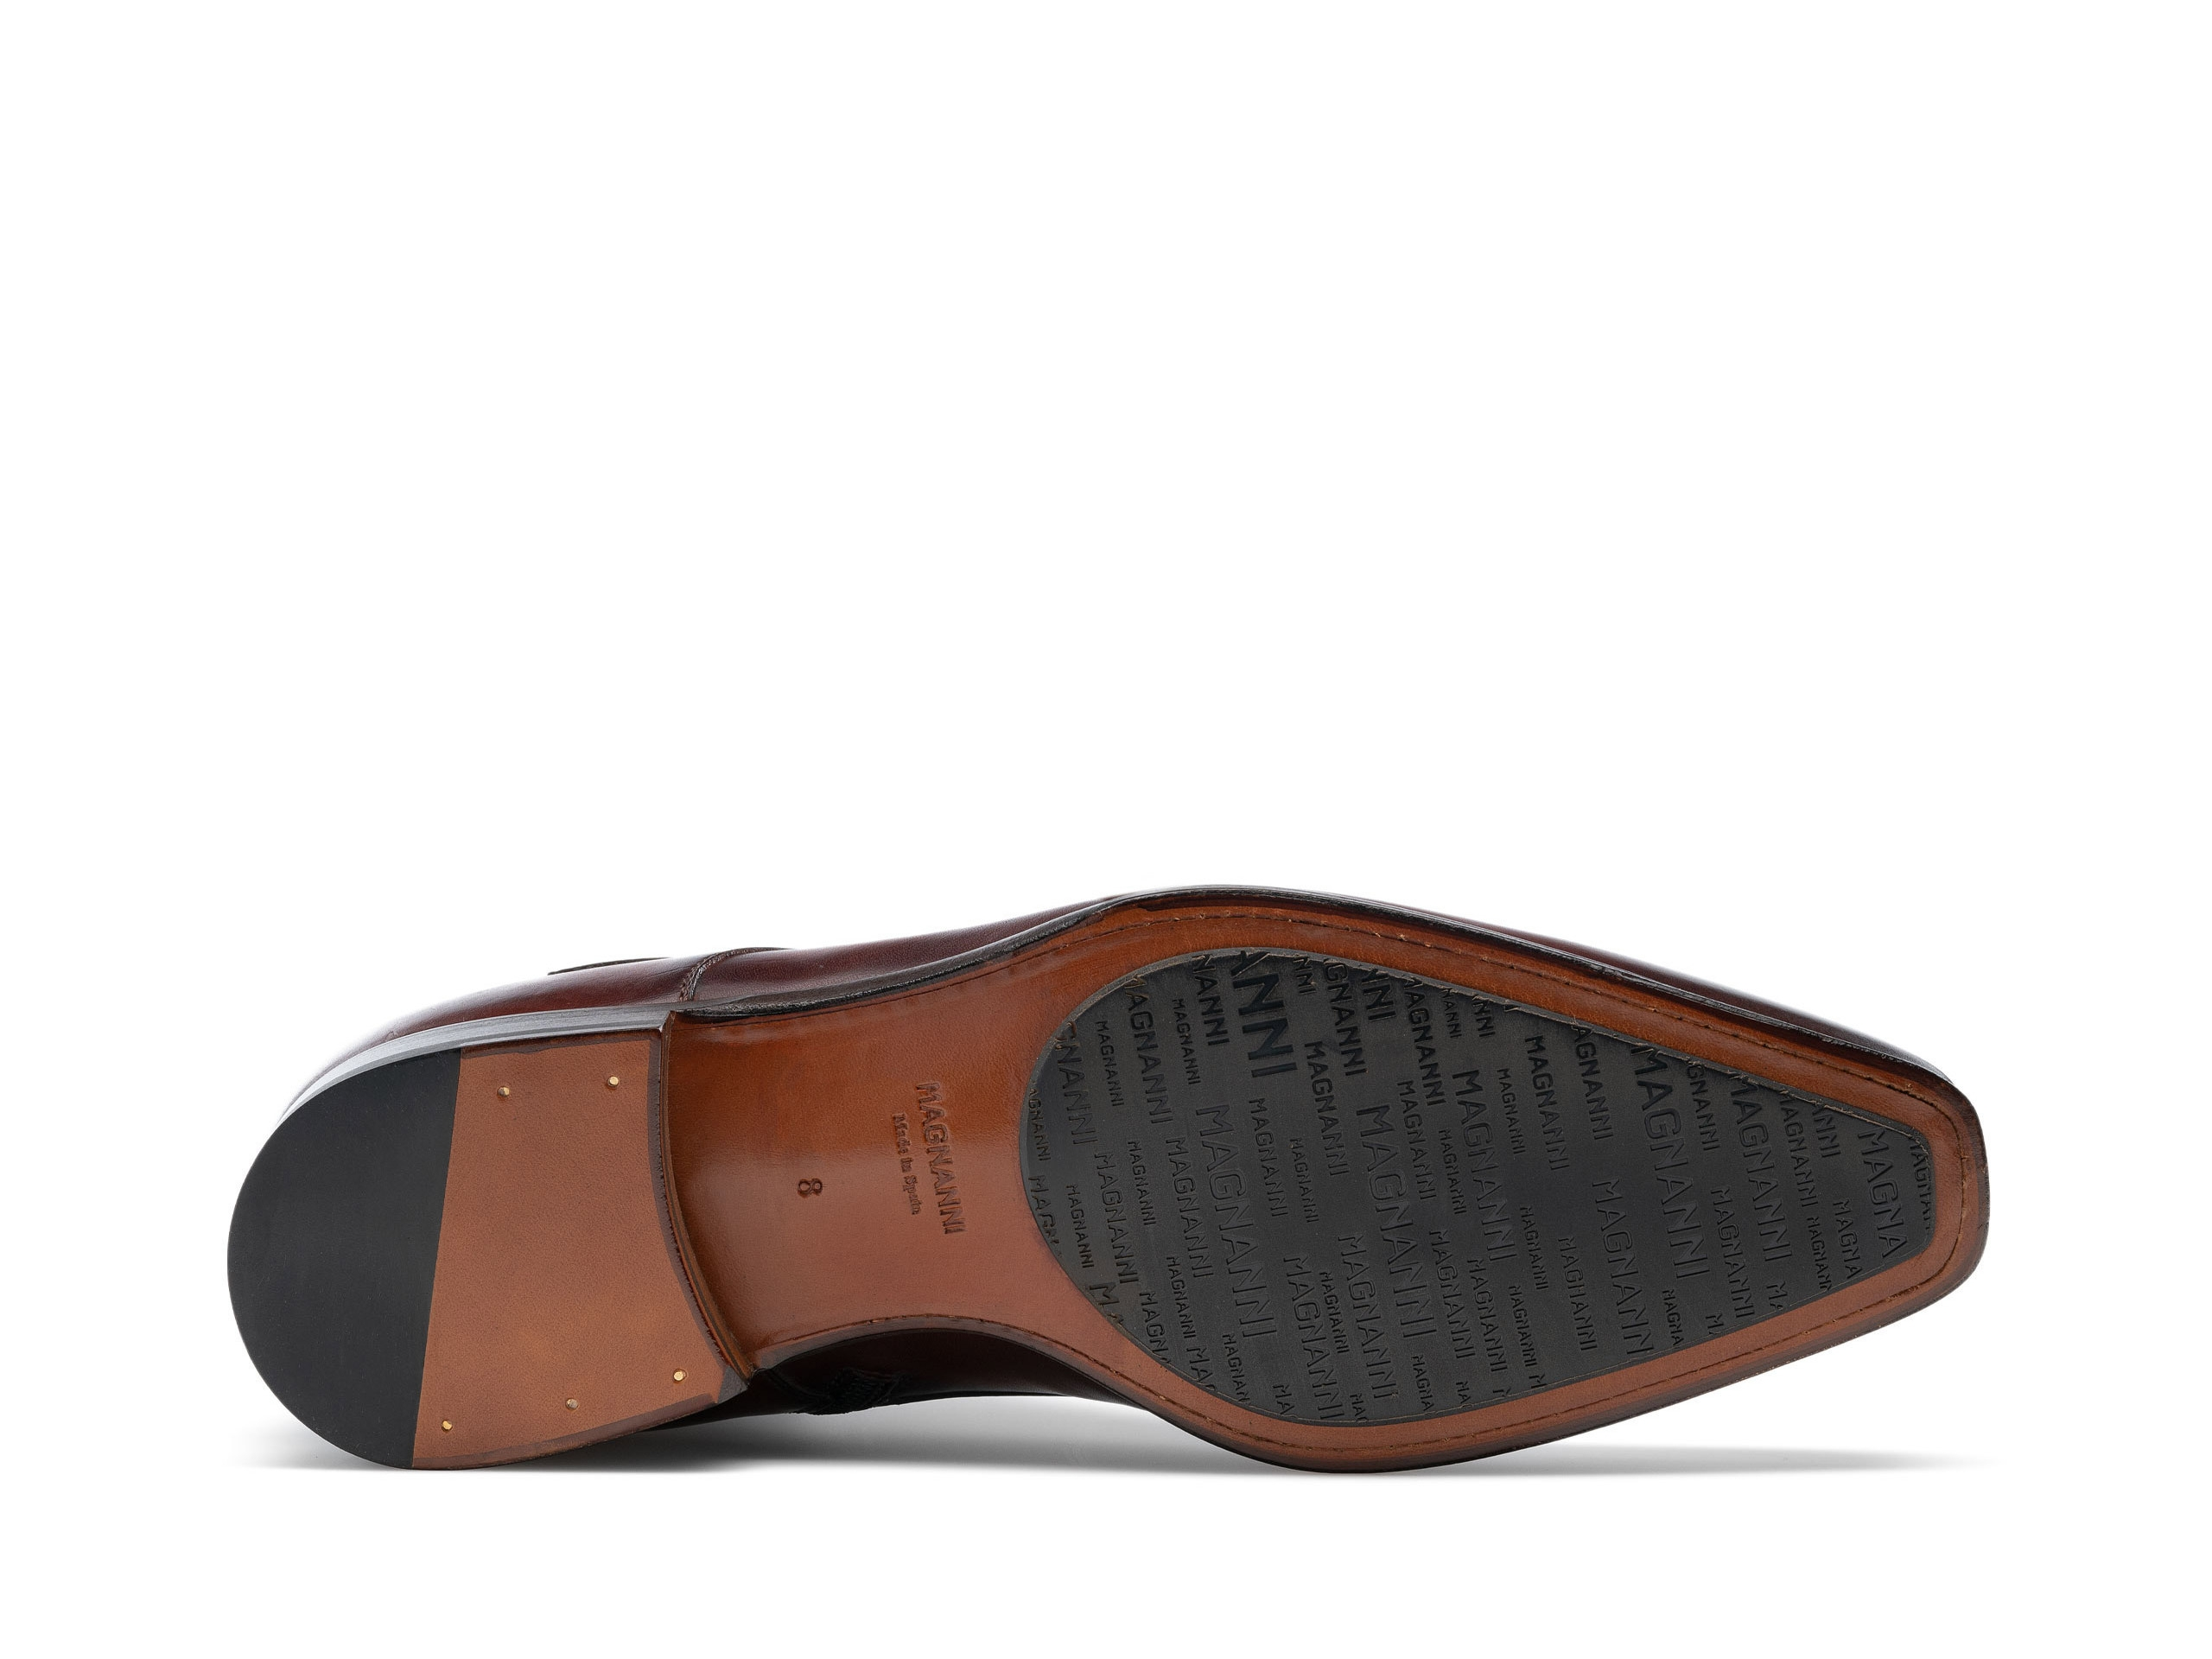 The sole of the Jagger